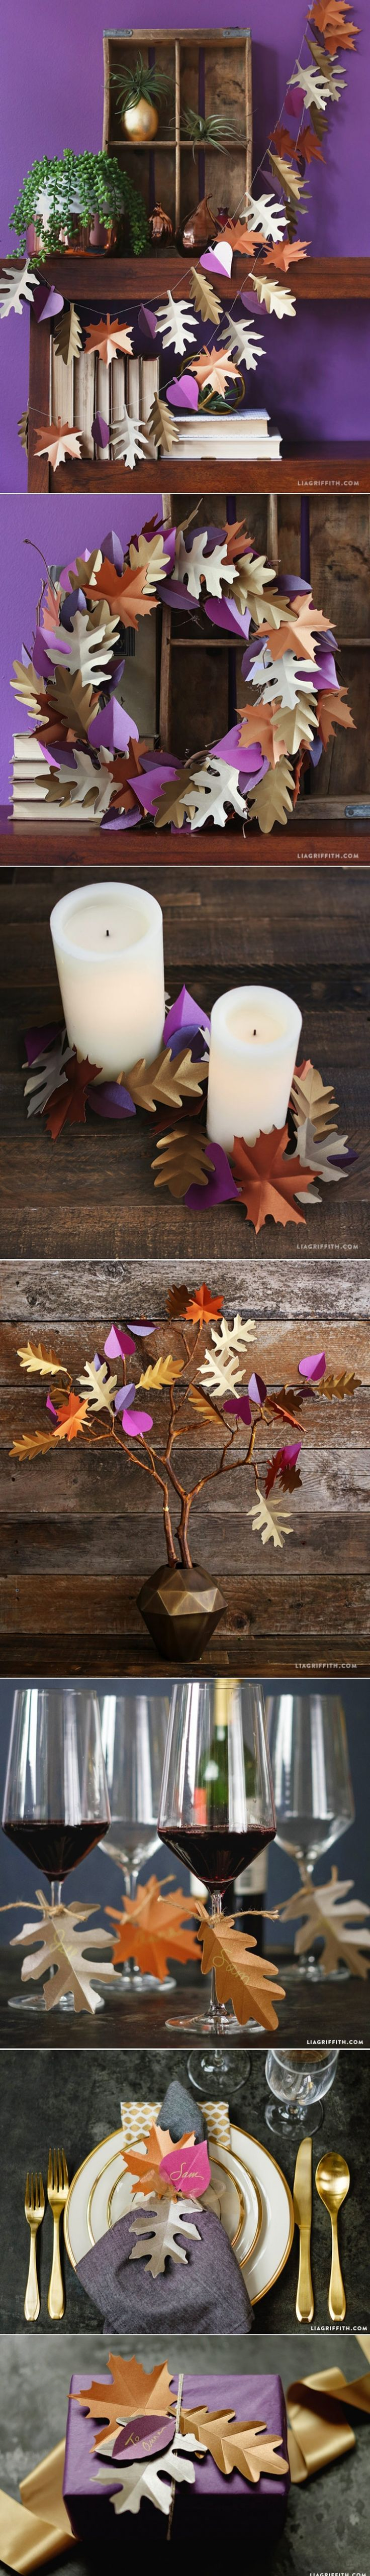 #falldecor #paperart #paperleaves #paperflowers #diydecor #decorateforfall http://www.LiaGriffith.com - created via https://pinthemall.net